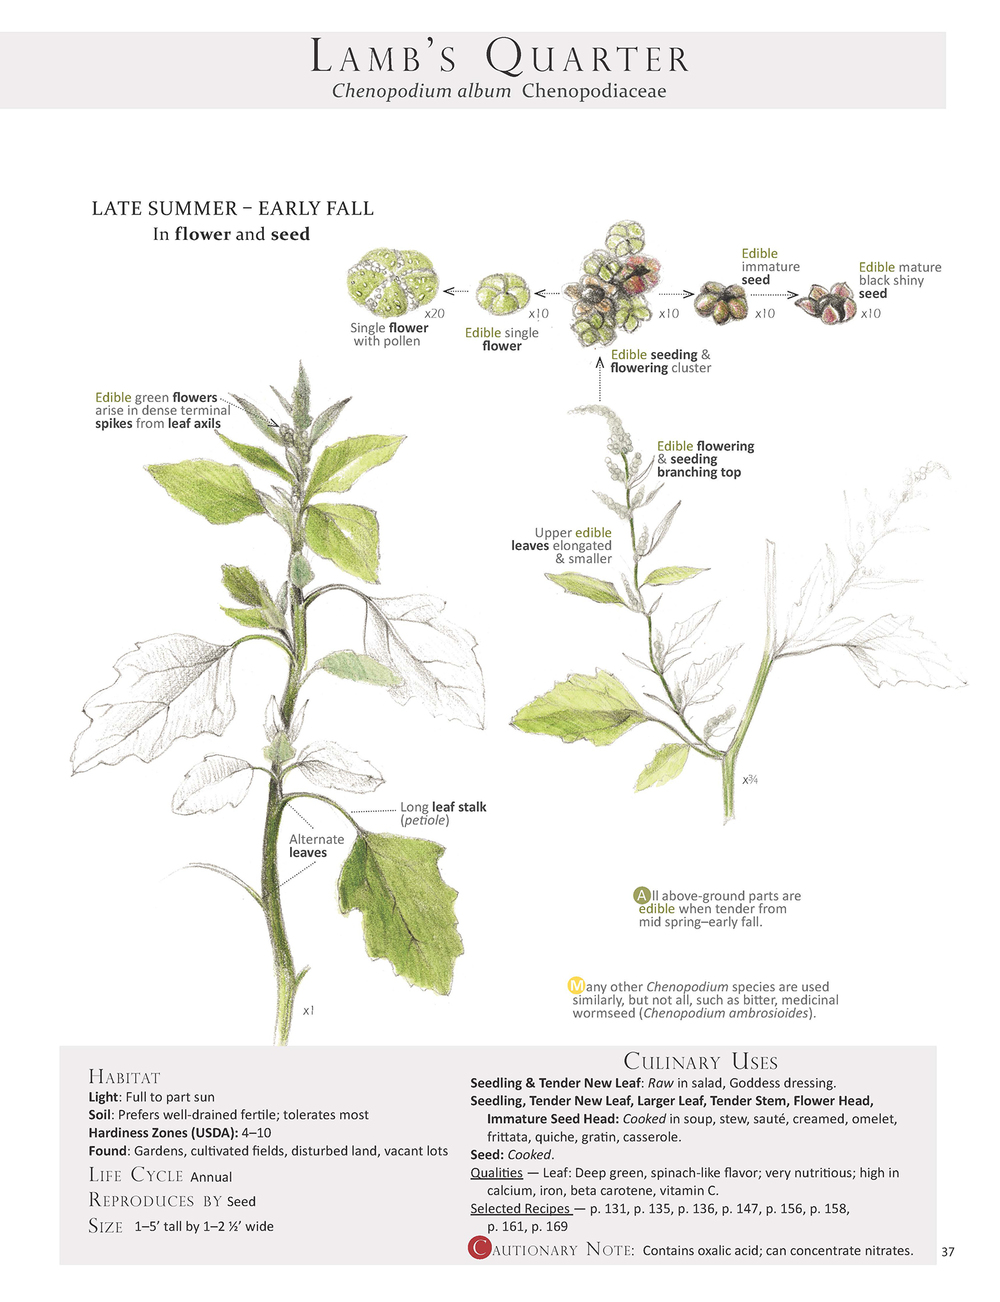 Lamb's Quarter - Chenopodium album